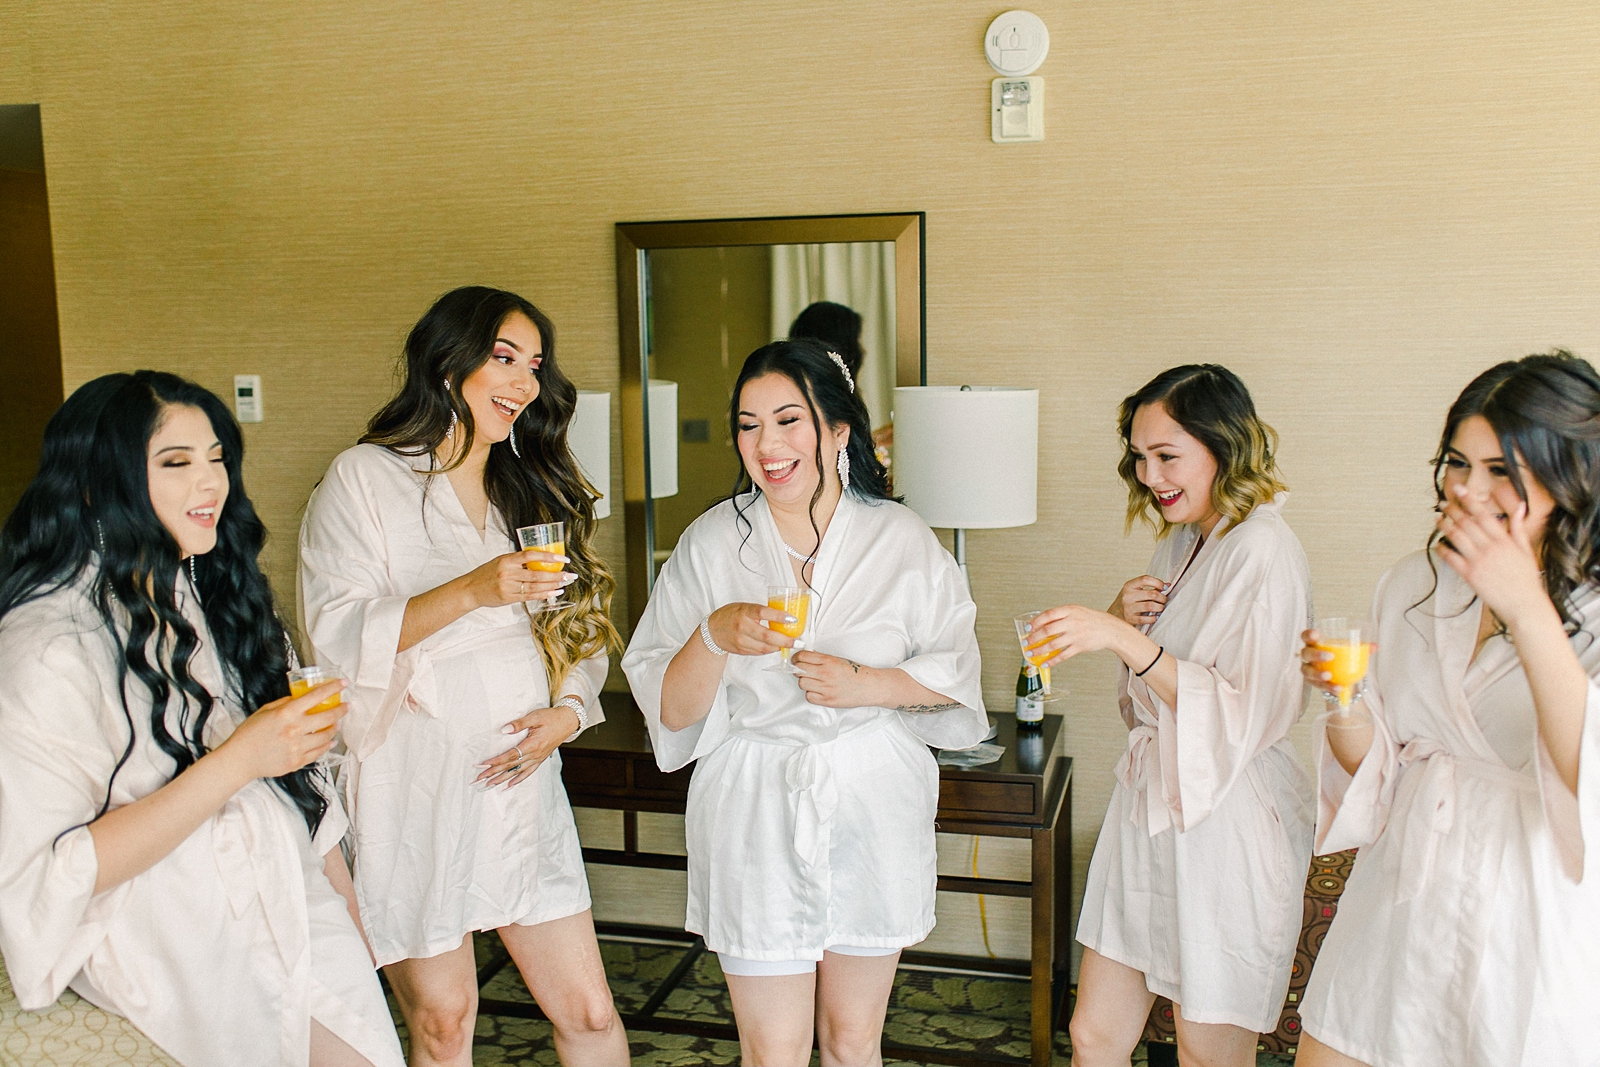 Cache Valley Logan Traditional Catholic Wedding Ceremony in a cathedral, Utah wedding photography, bride getting ready photos, bride and bridesmaids in robes